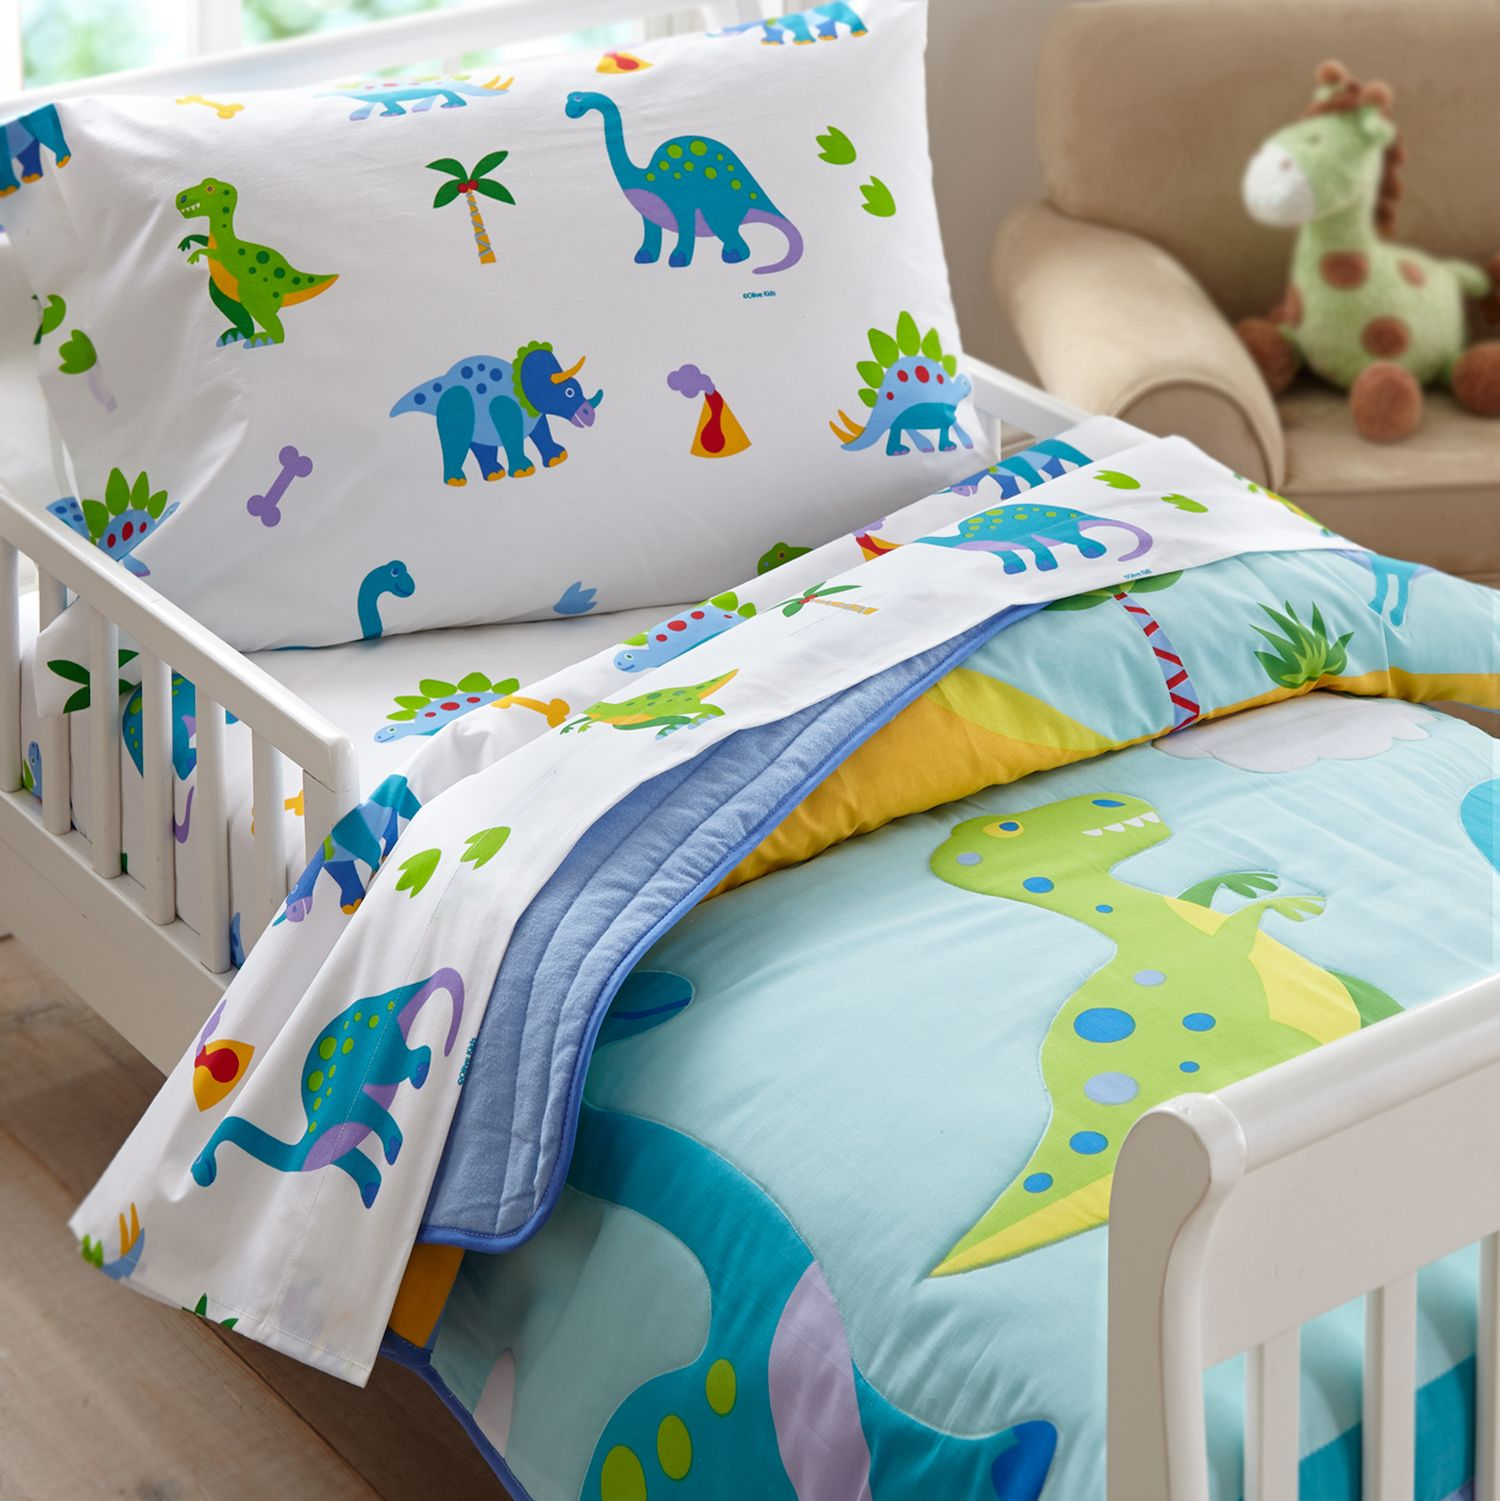 Dinosaurland Blue Green Dinosaur Toddler Bedding forter Sheet